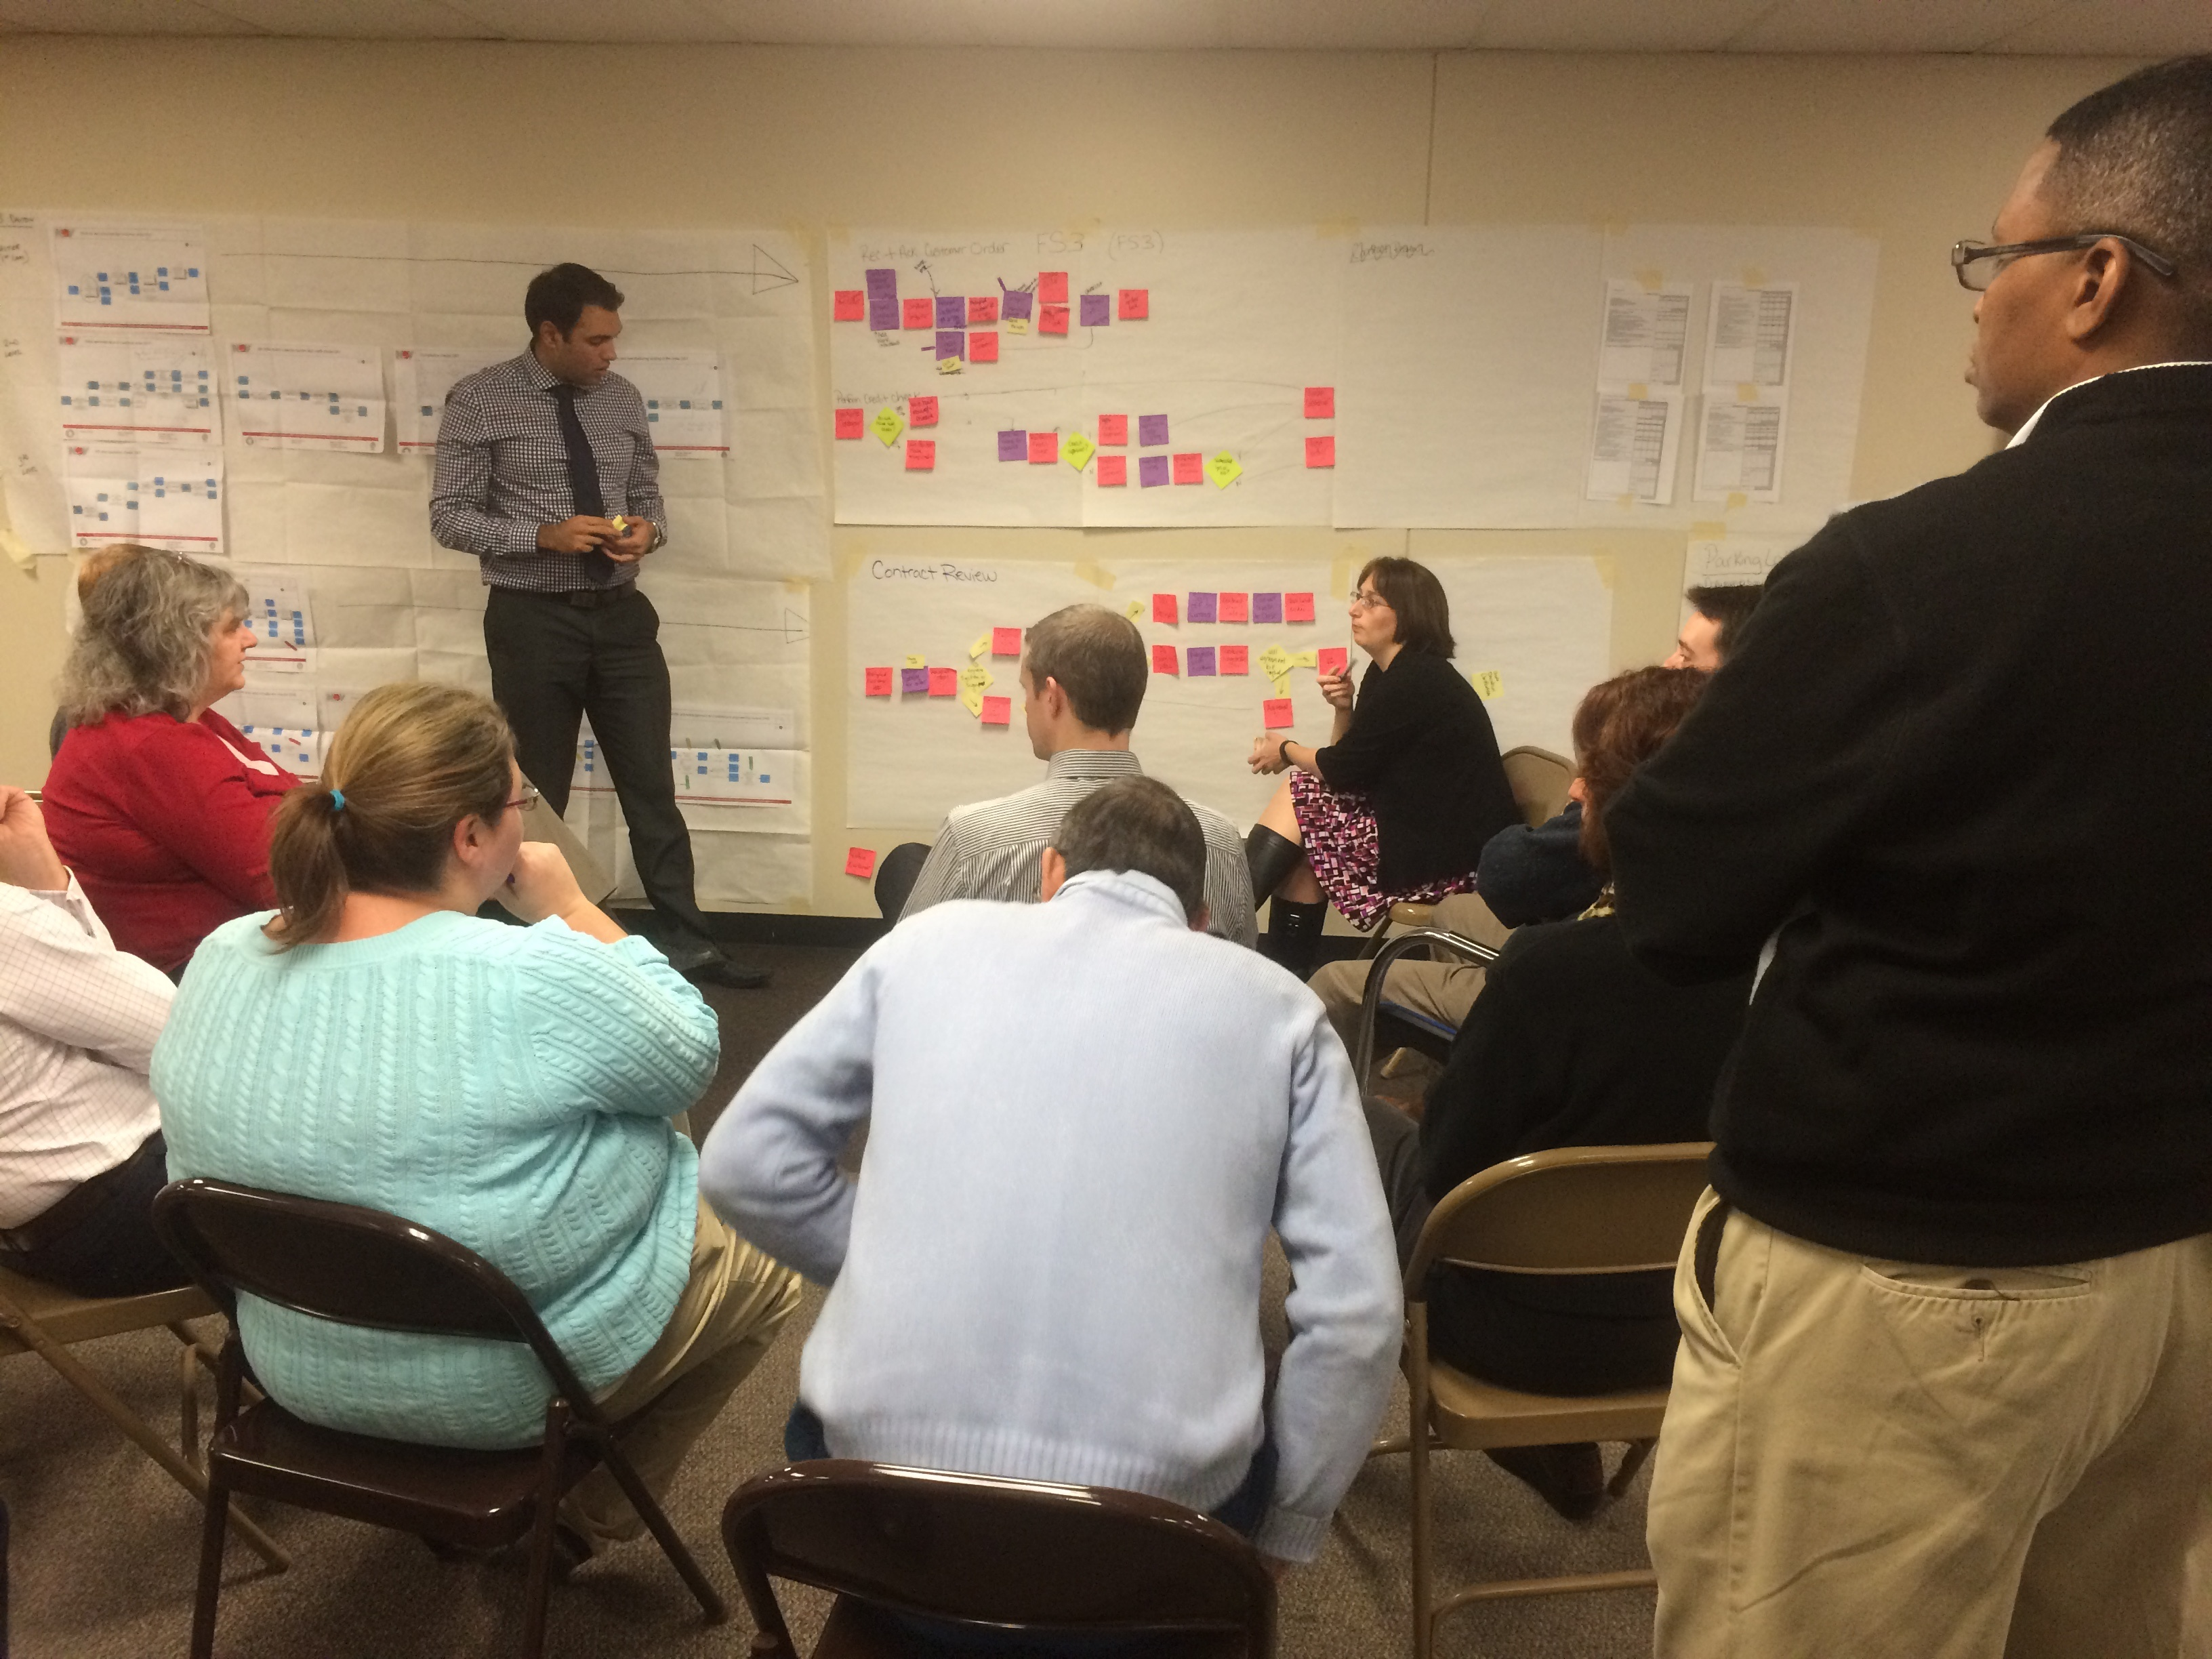 Facilitating Process discovery workshops